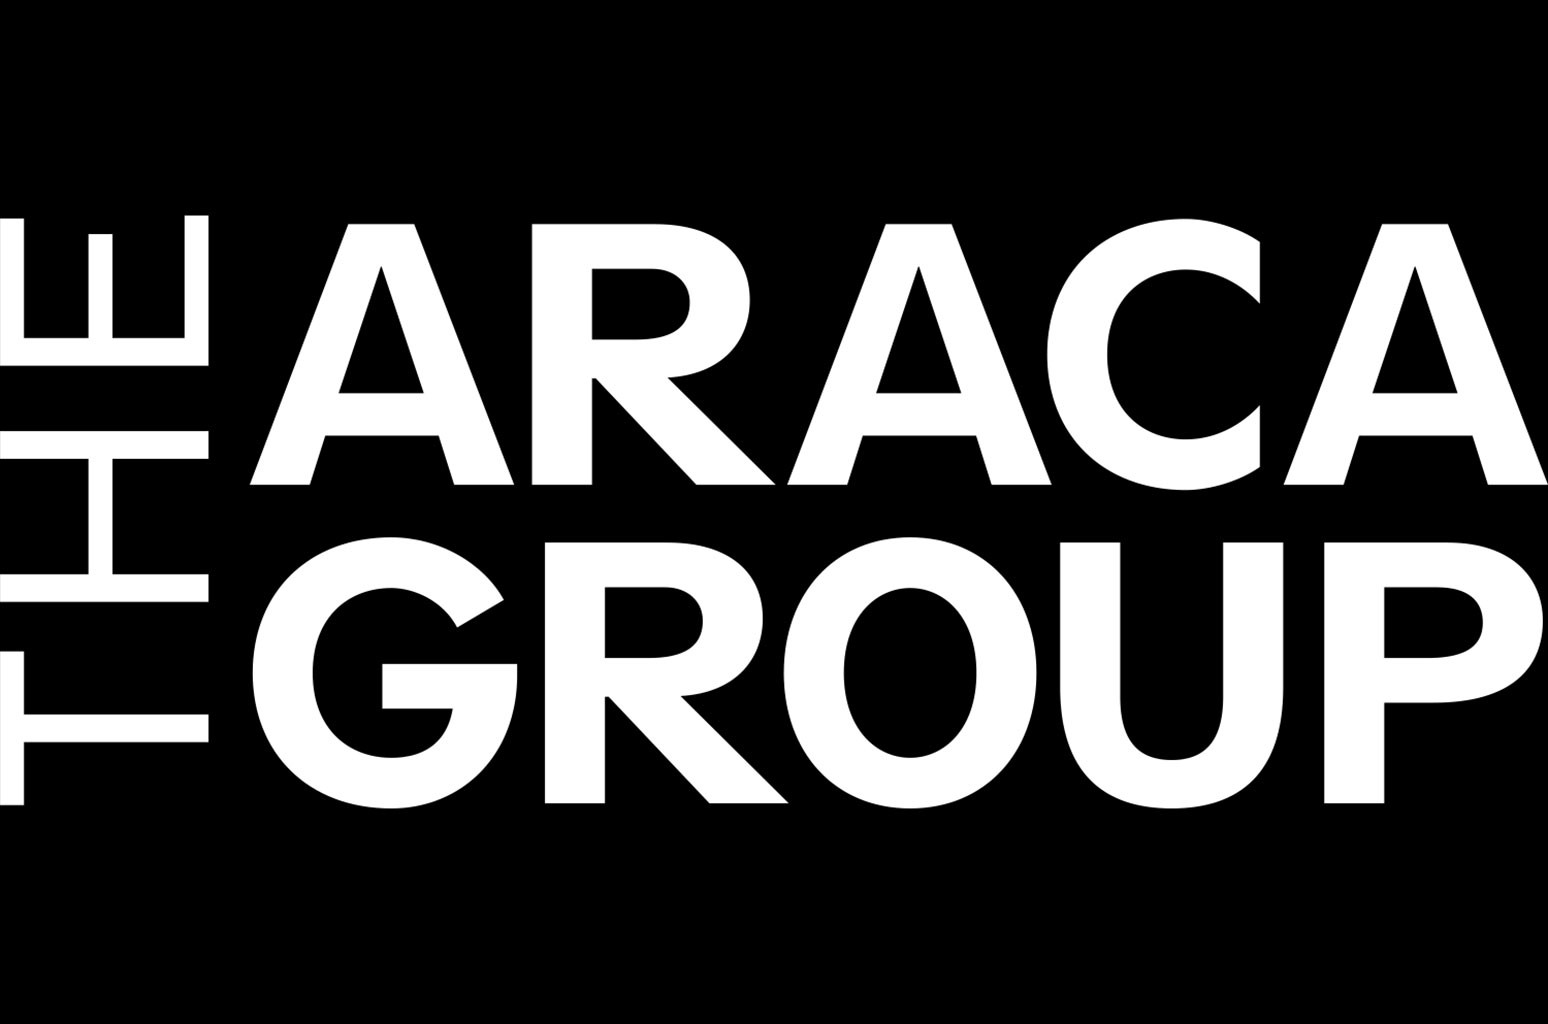 the araca group